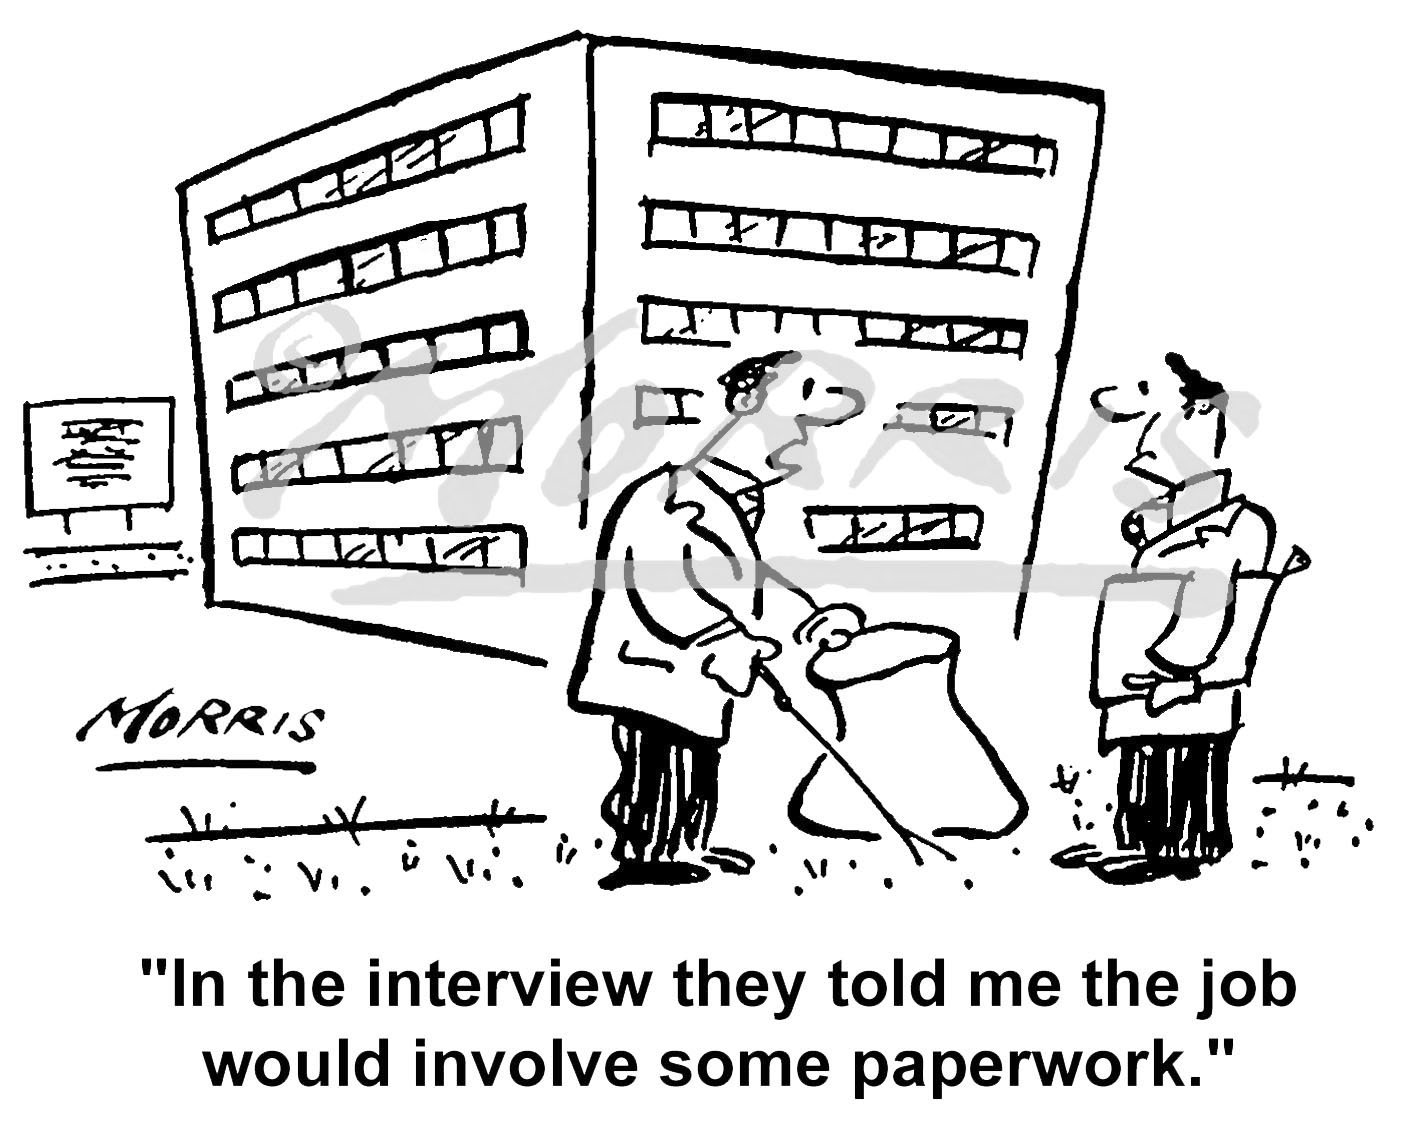 Interview job comic cartoon Ref: 0626bw